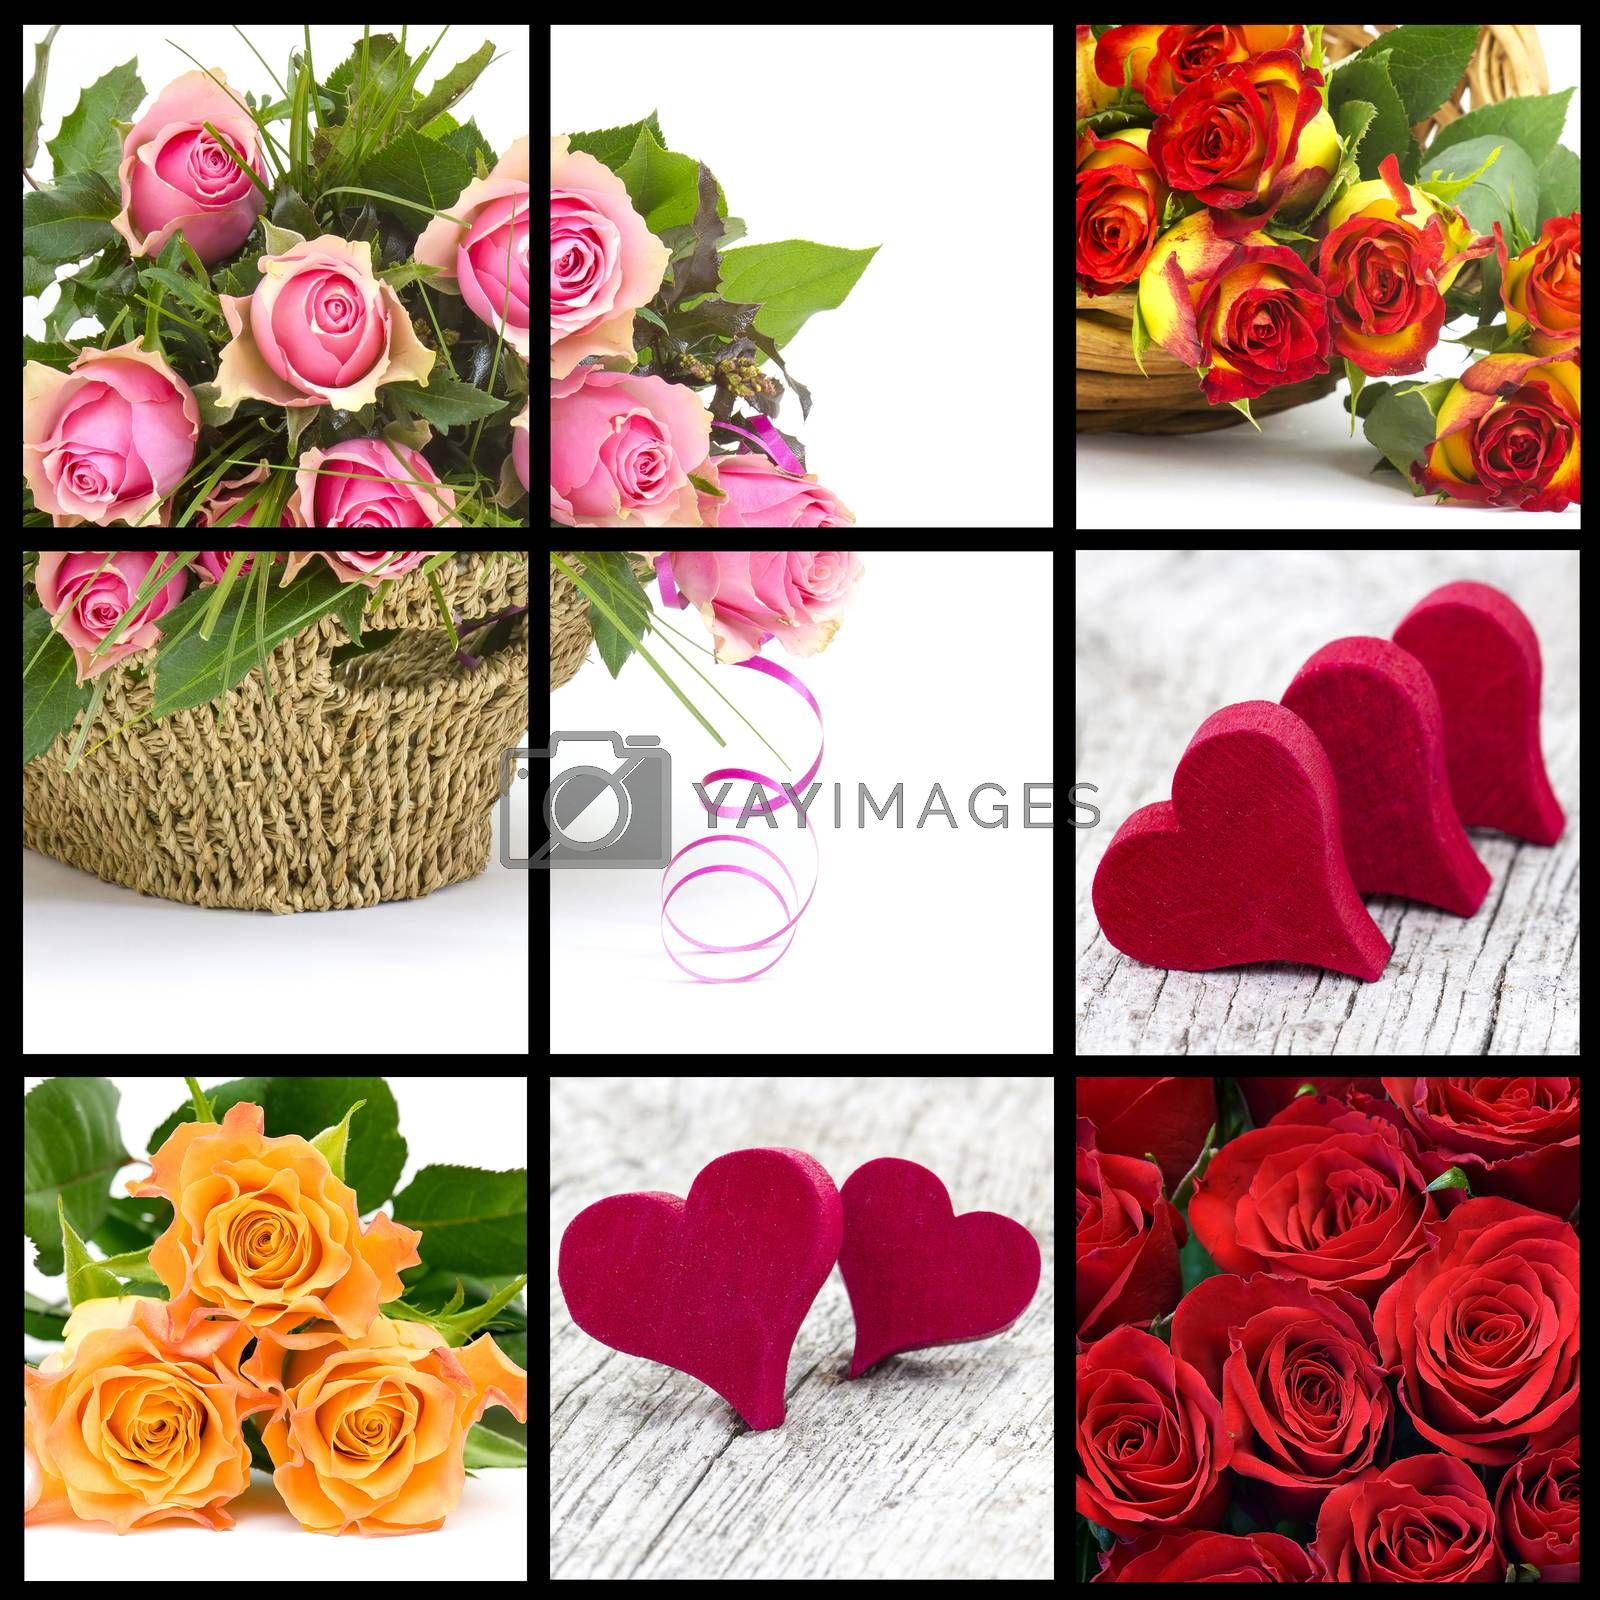 colourful roses and hearts - collage